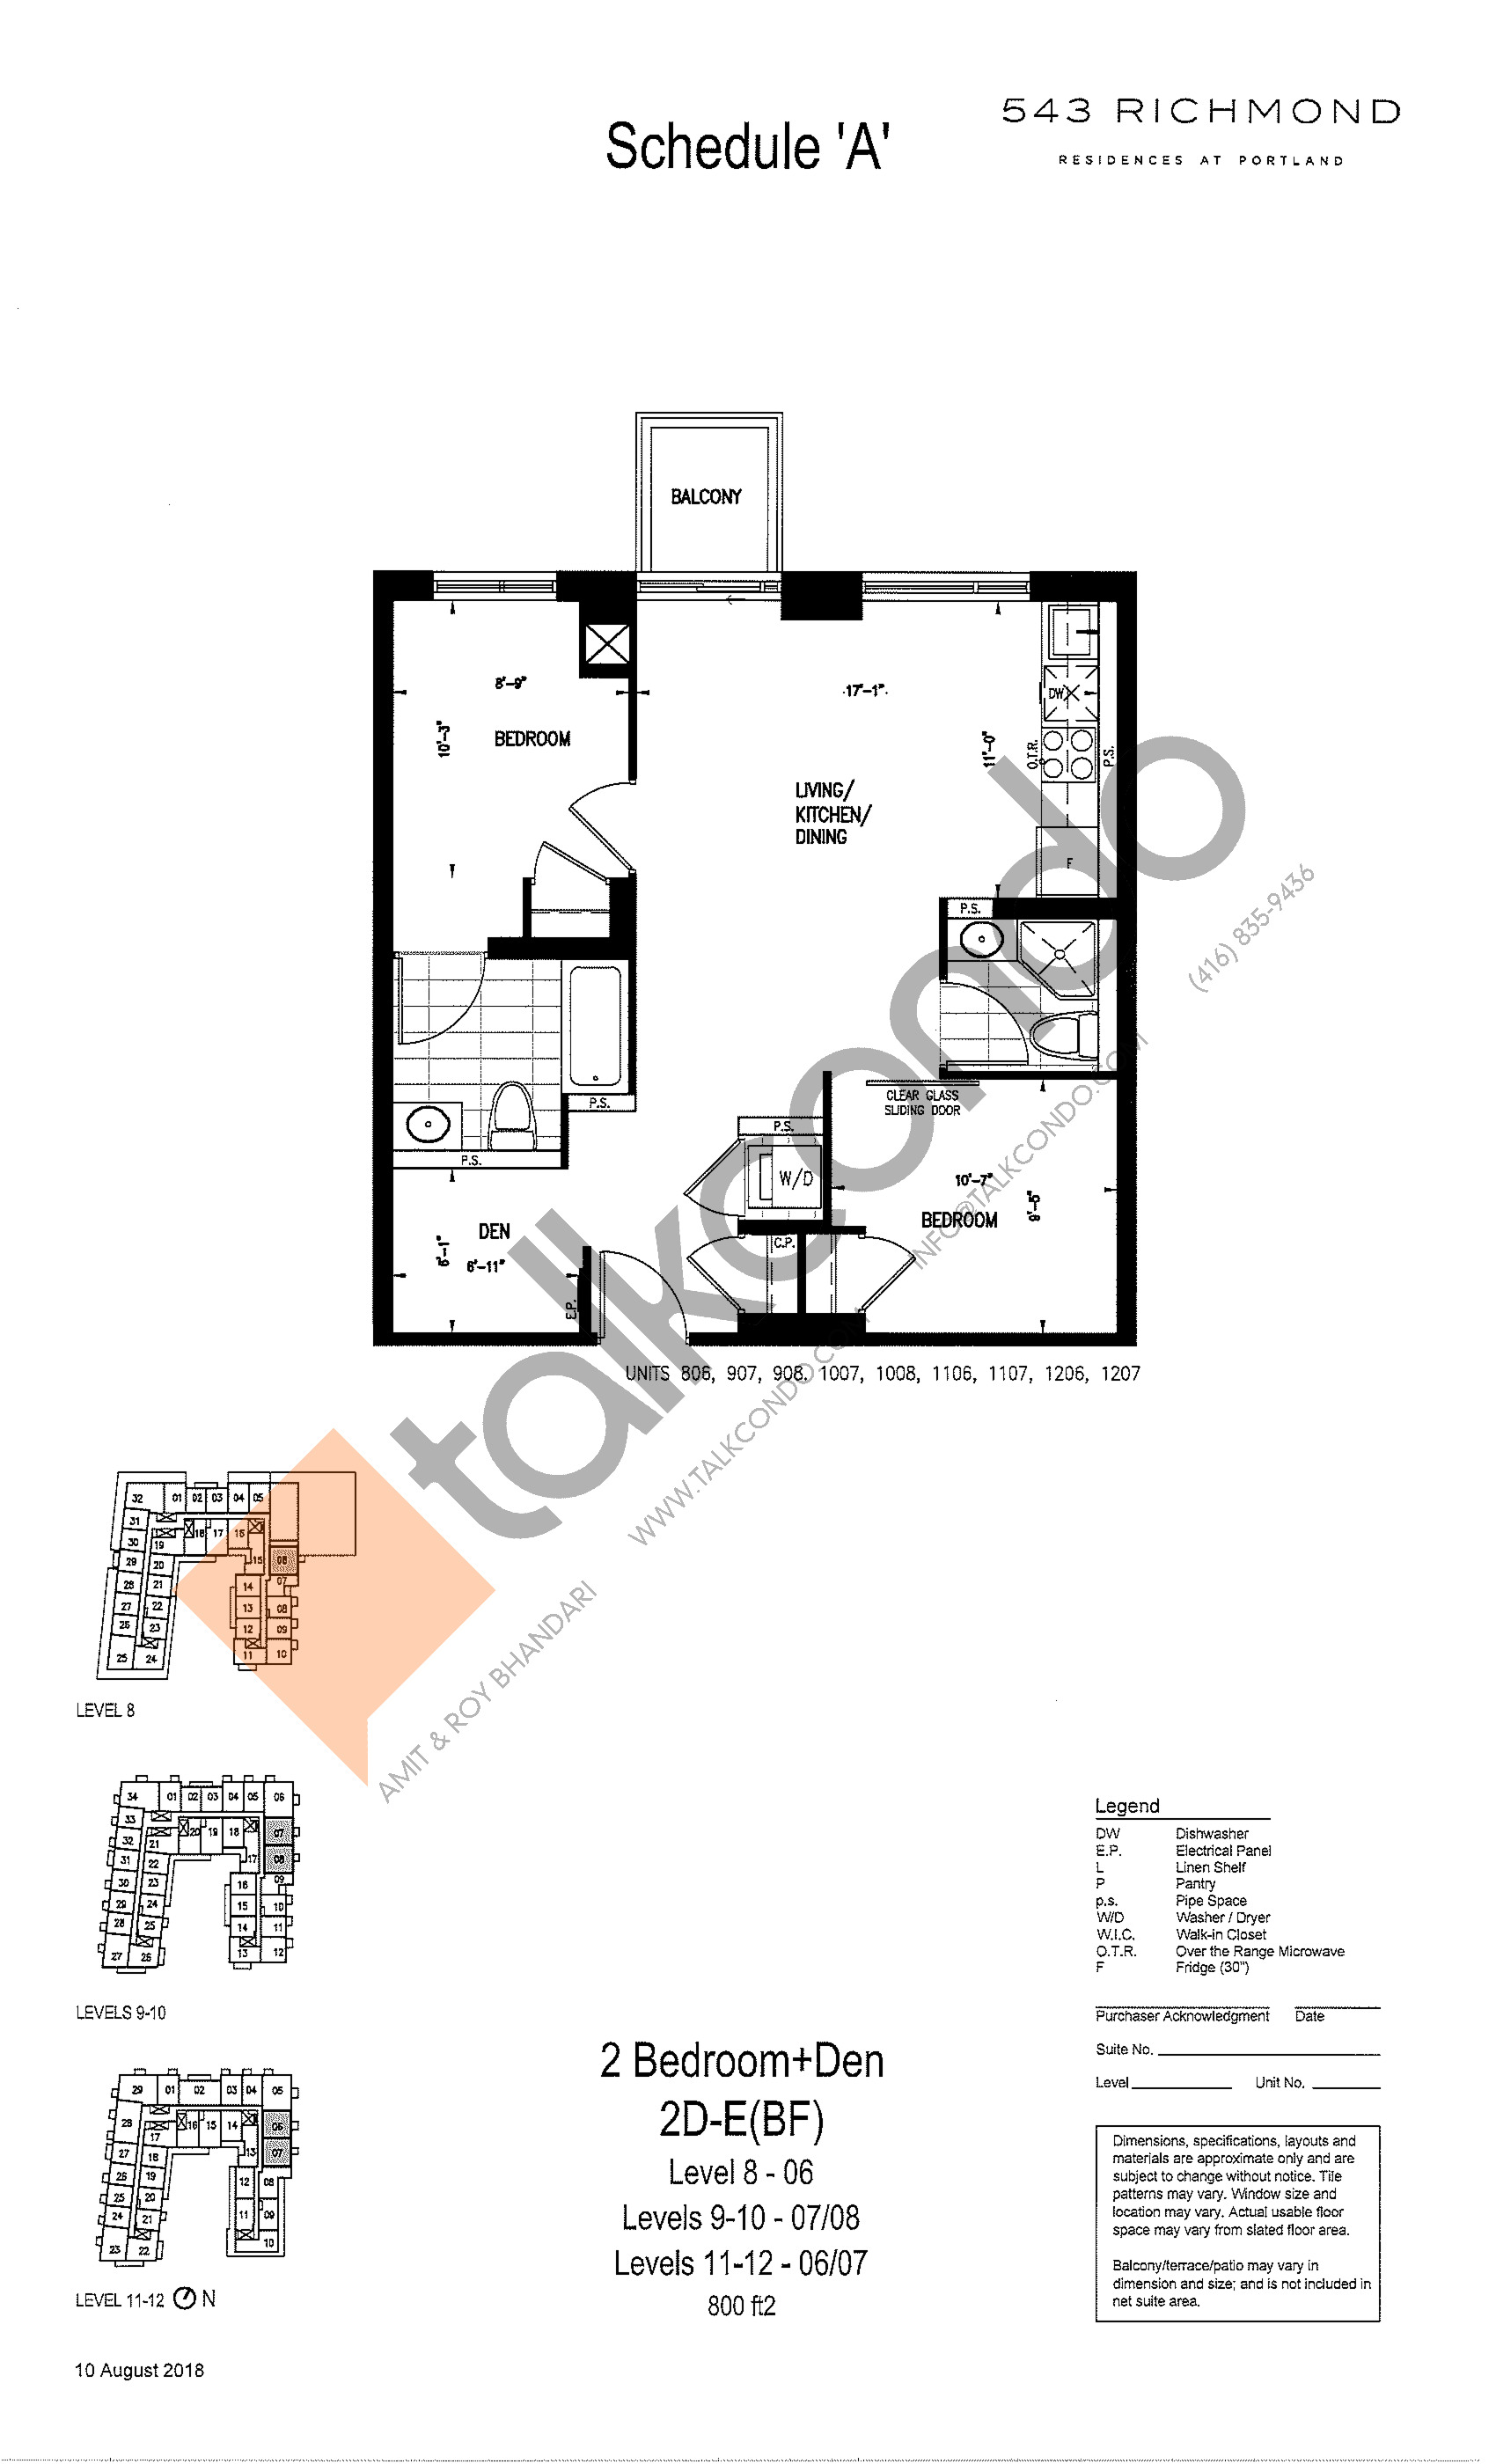 2D-E(BF) Floor Plan at 543 Richmond St Condos - 800 sq.ft